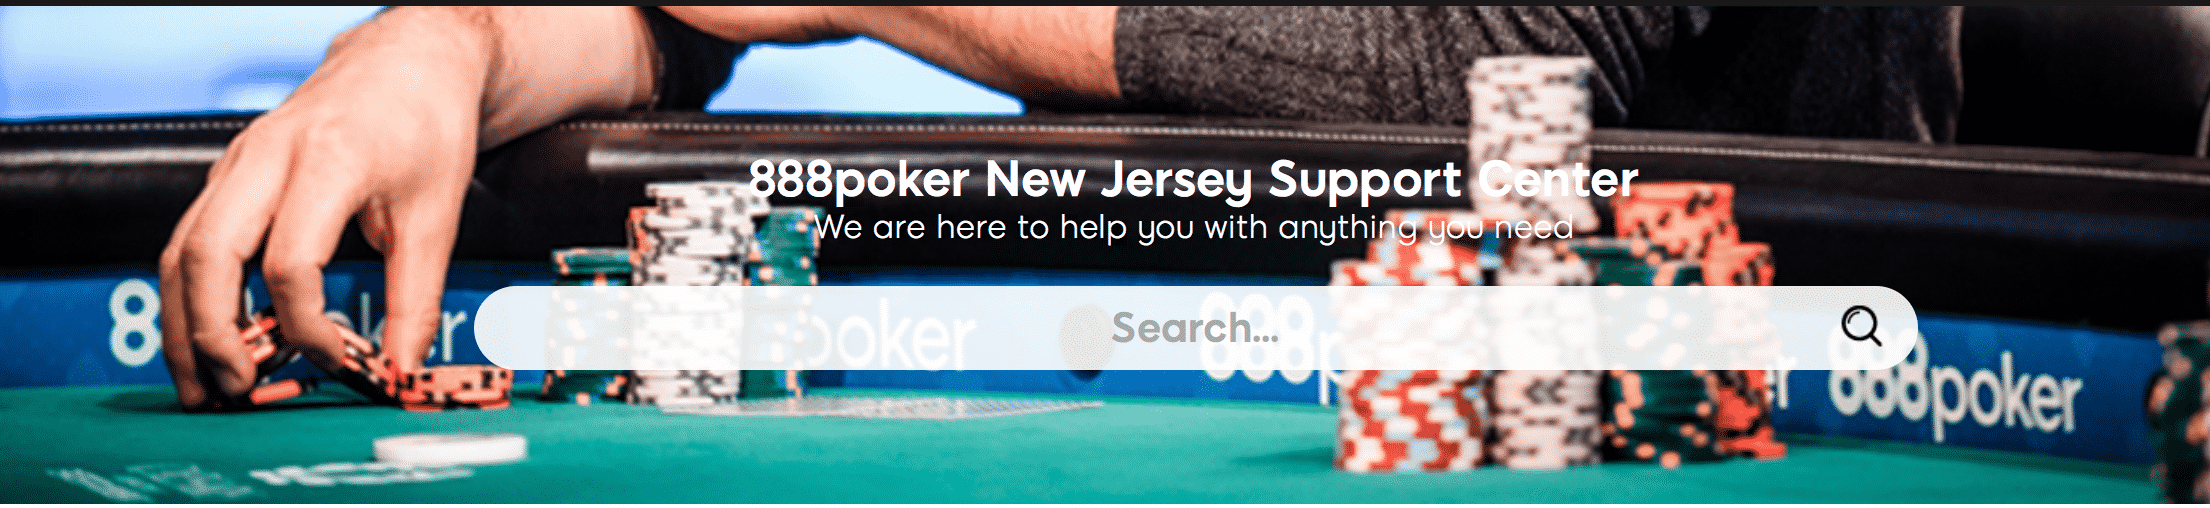 888 poker customer service